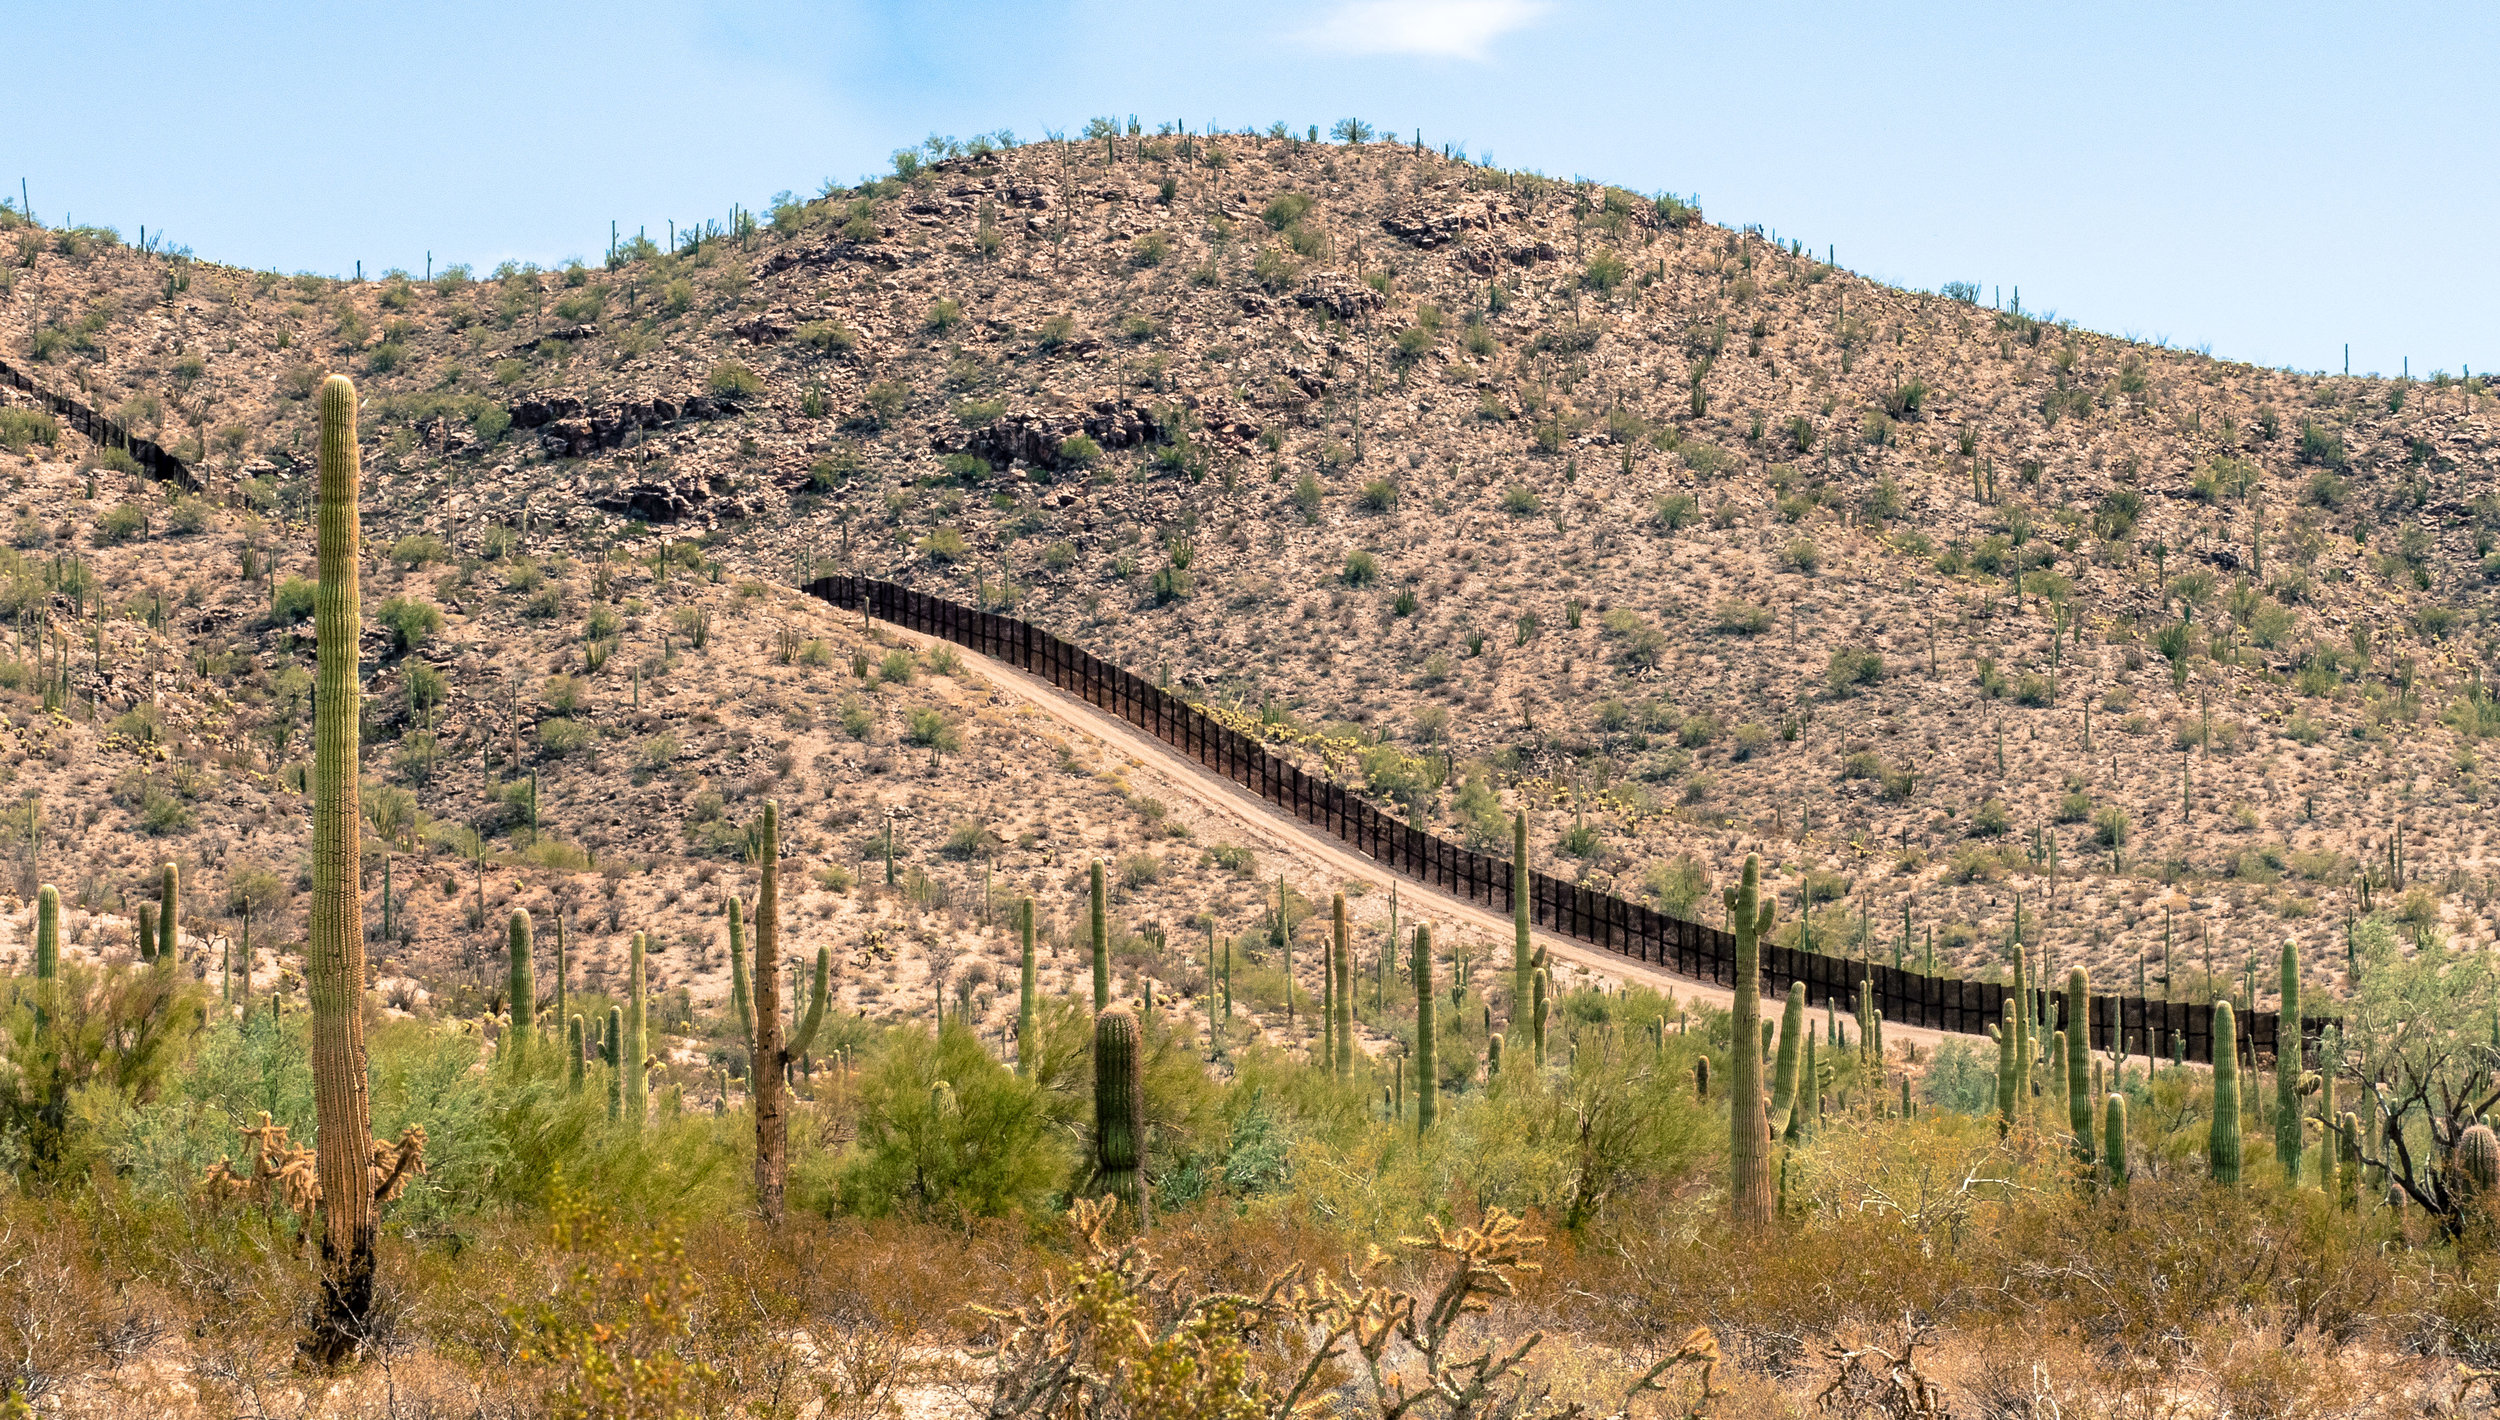 Yes, there is a wall along the Organ Pipe National Monument and Mexico.